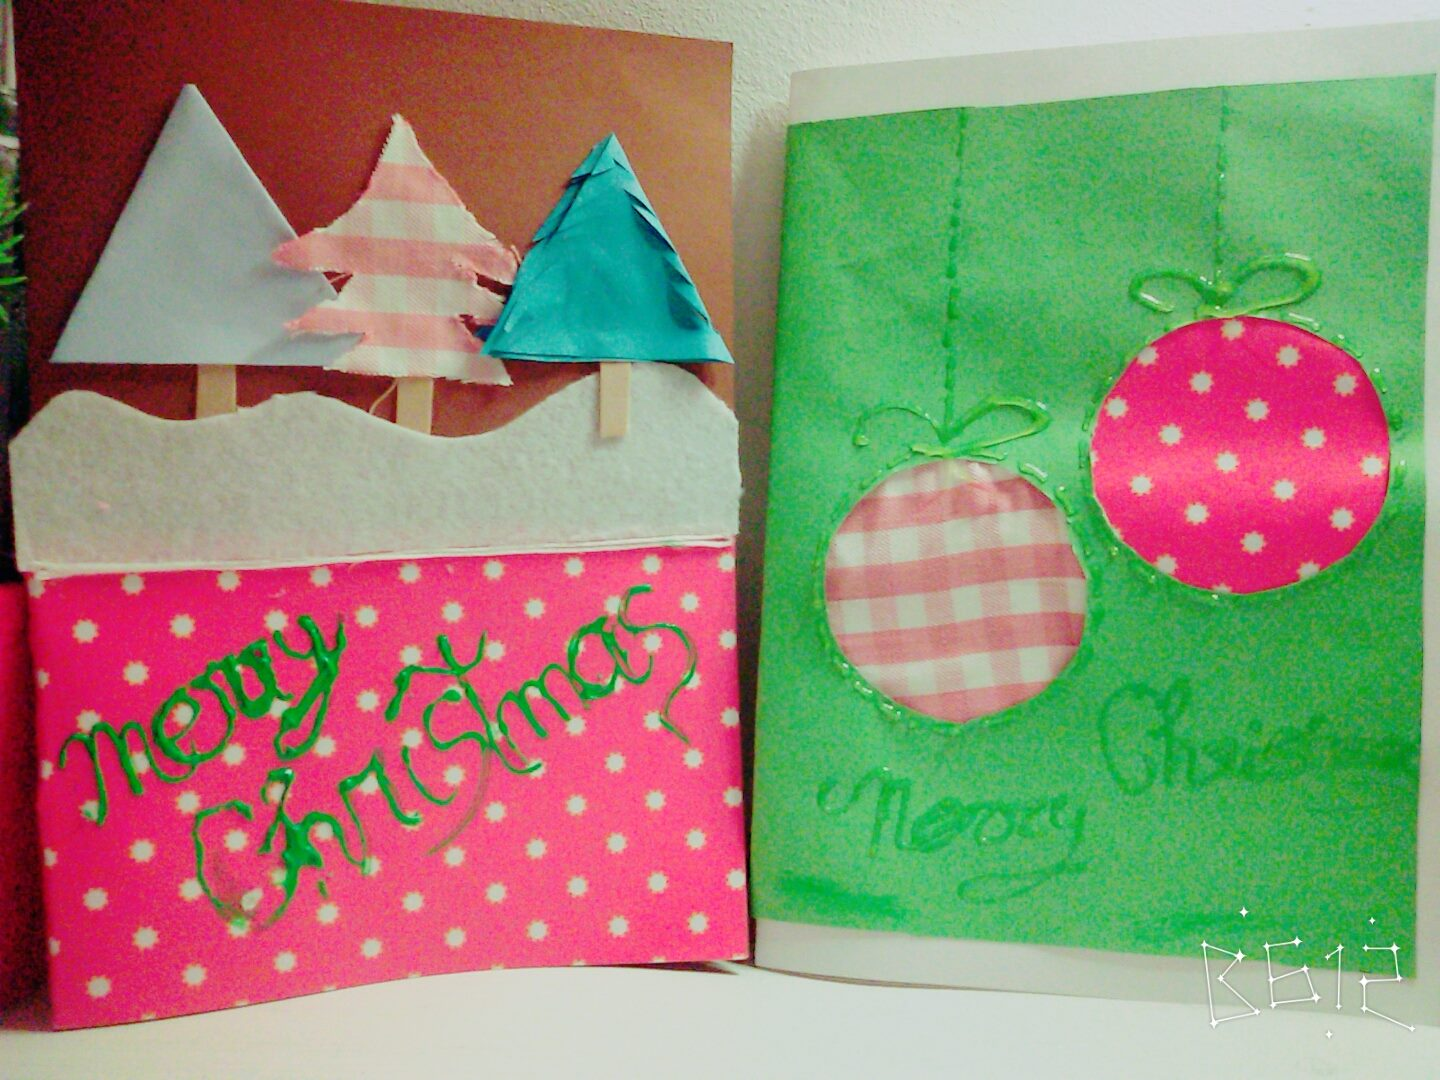 Como Hacer Decoraciones Navideñas Faciles Cartas Navideas Creativas Excellent Otras With Cartas